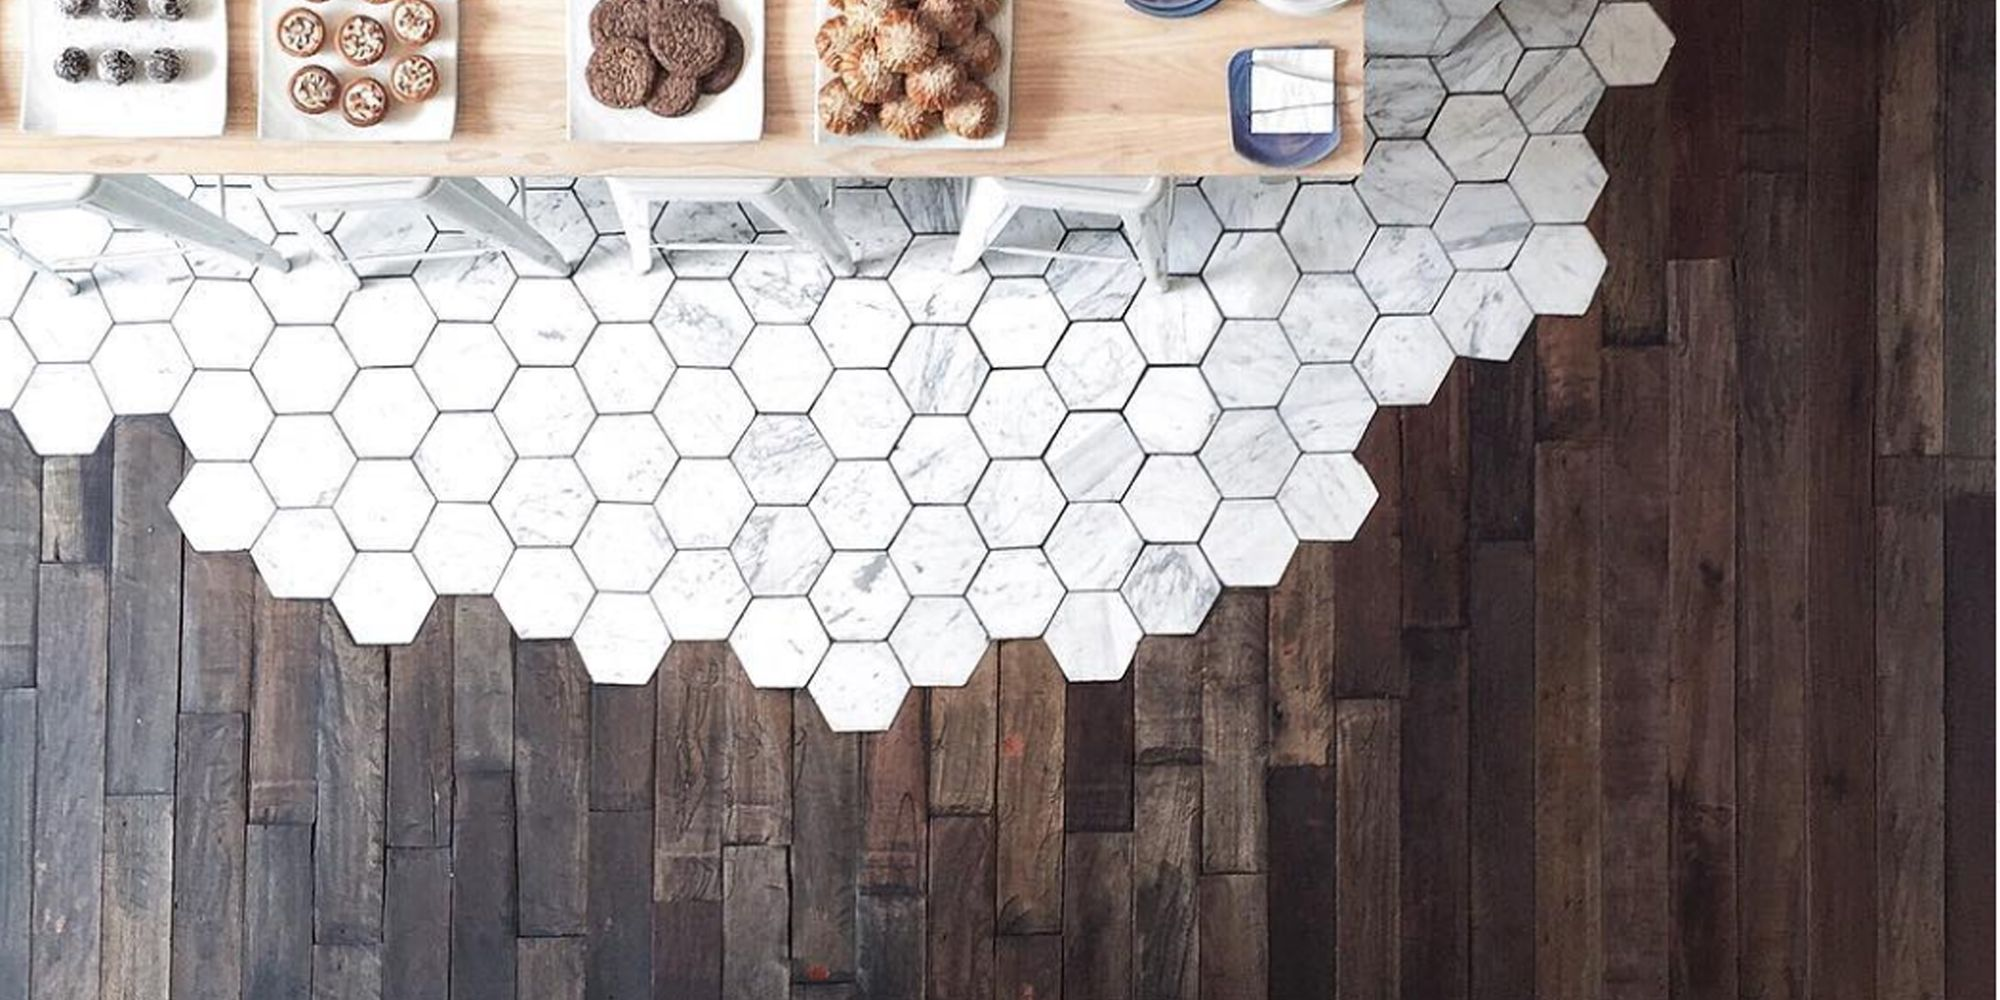 Hexagonal Tiles And Hardwood Make The Most Beautiful Flooring Combination Transitional Flooring